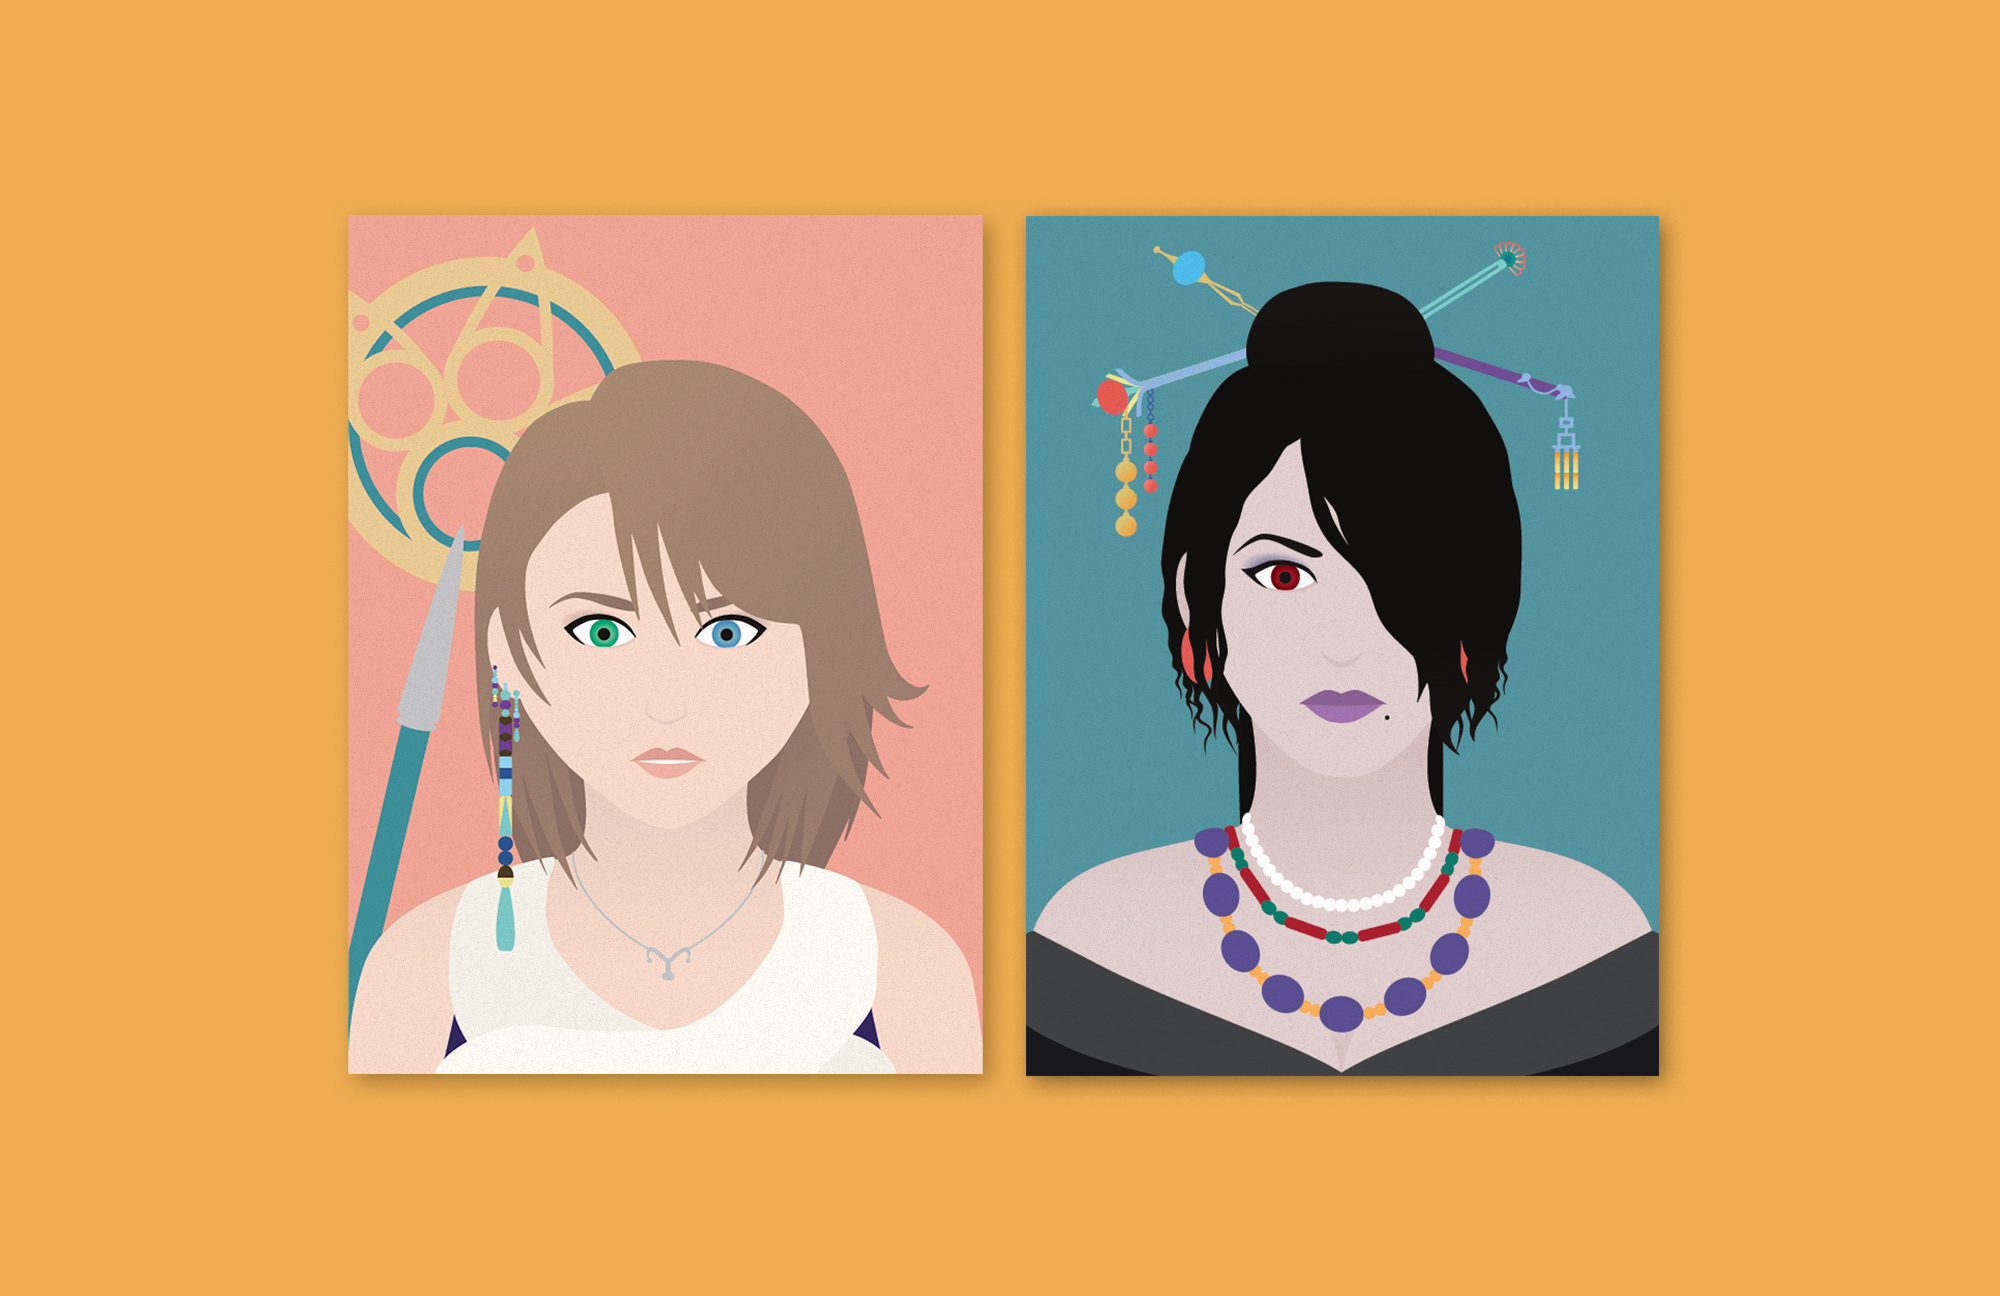 Two vector illustrations over a mustard background. The first is a portrait of Yuna from the video game Final Fantasy X, over a salmon-colored background. The second is Lulu from the same game, over a teal background.